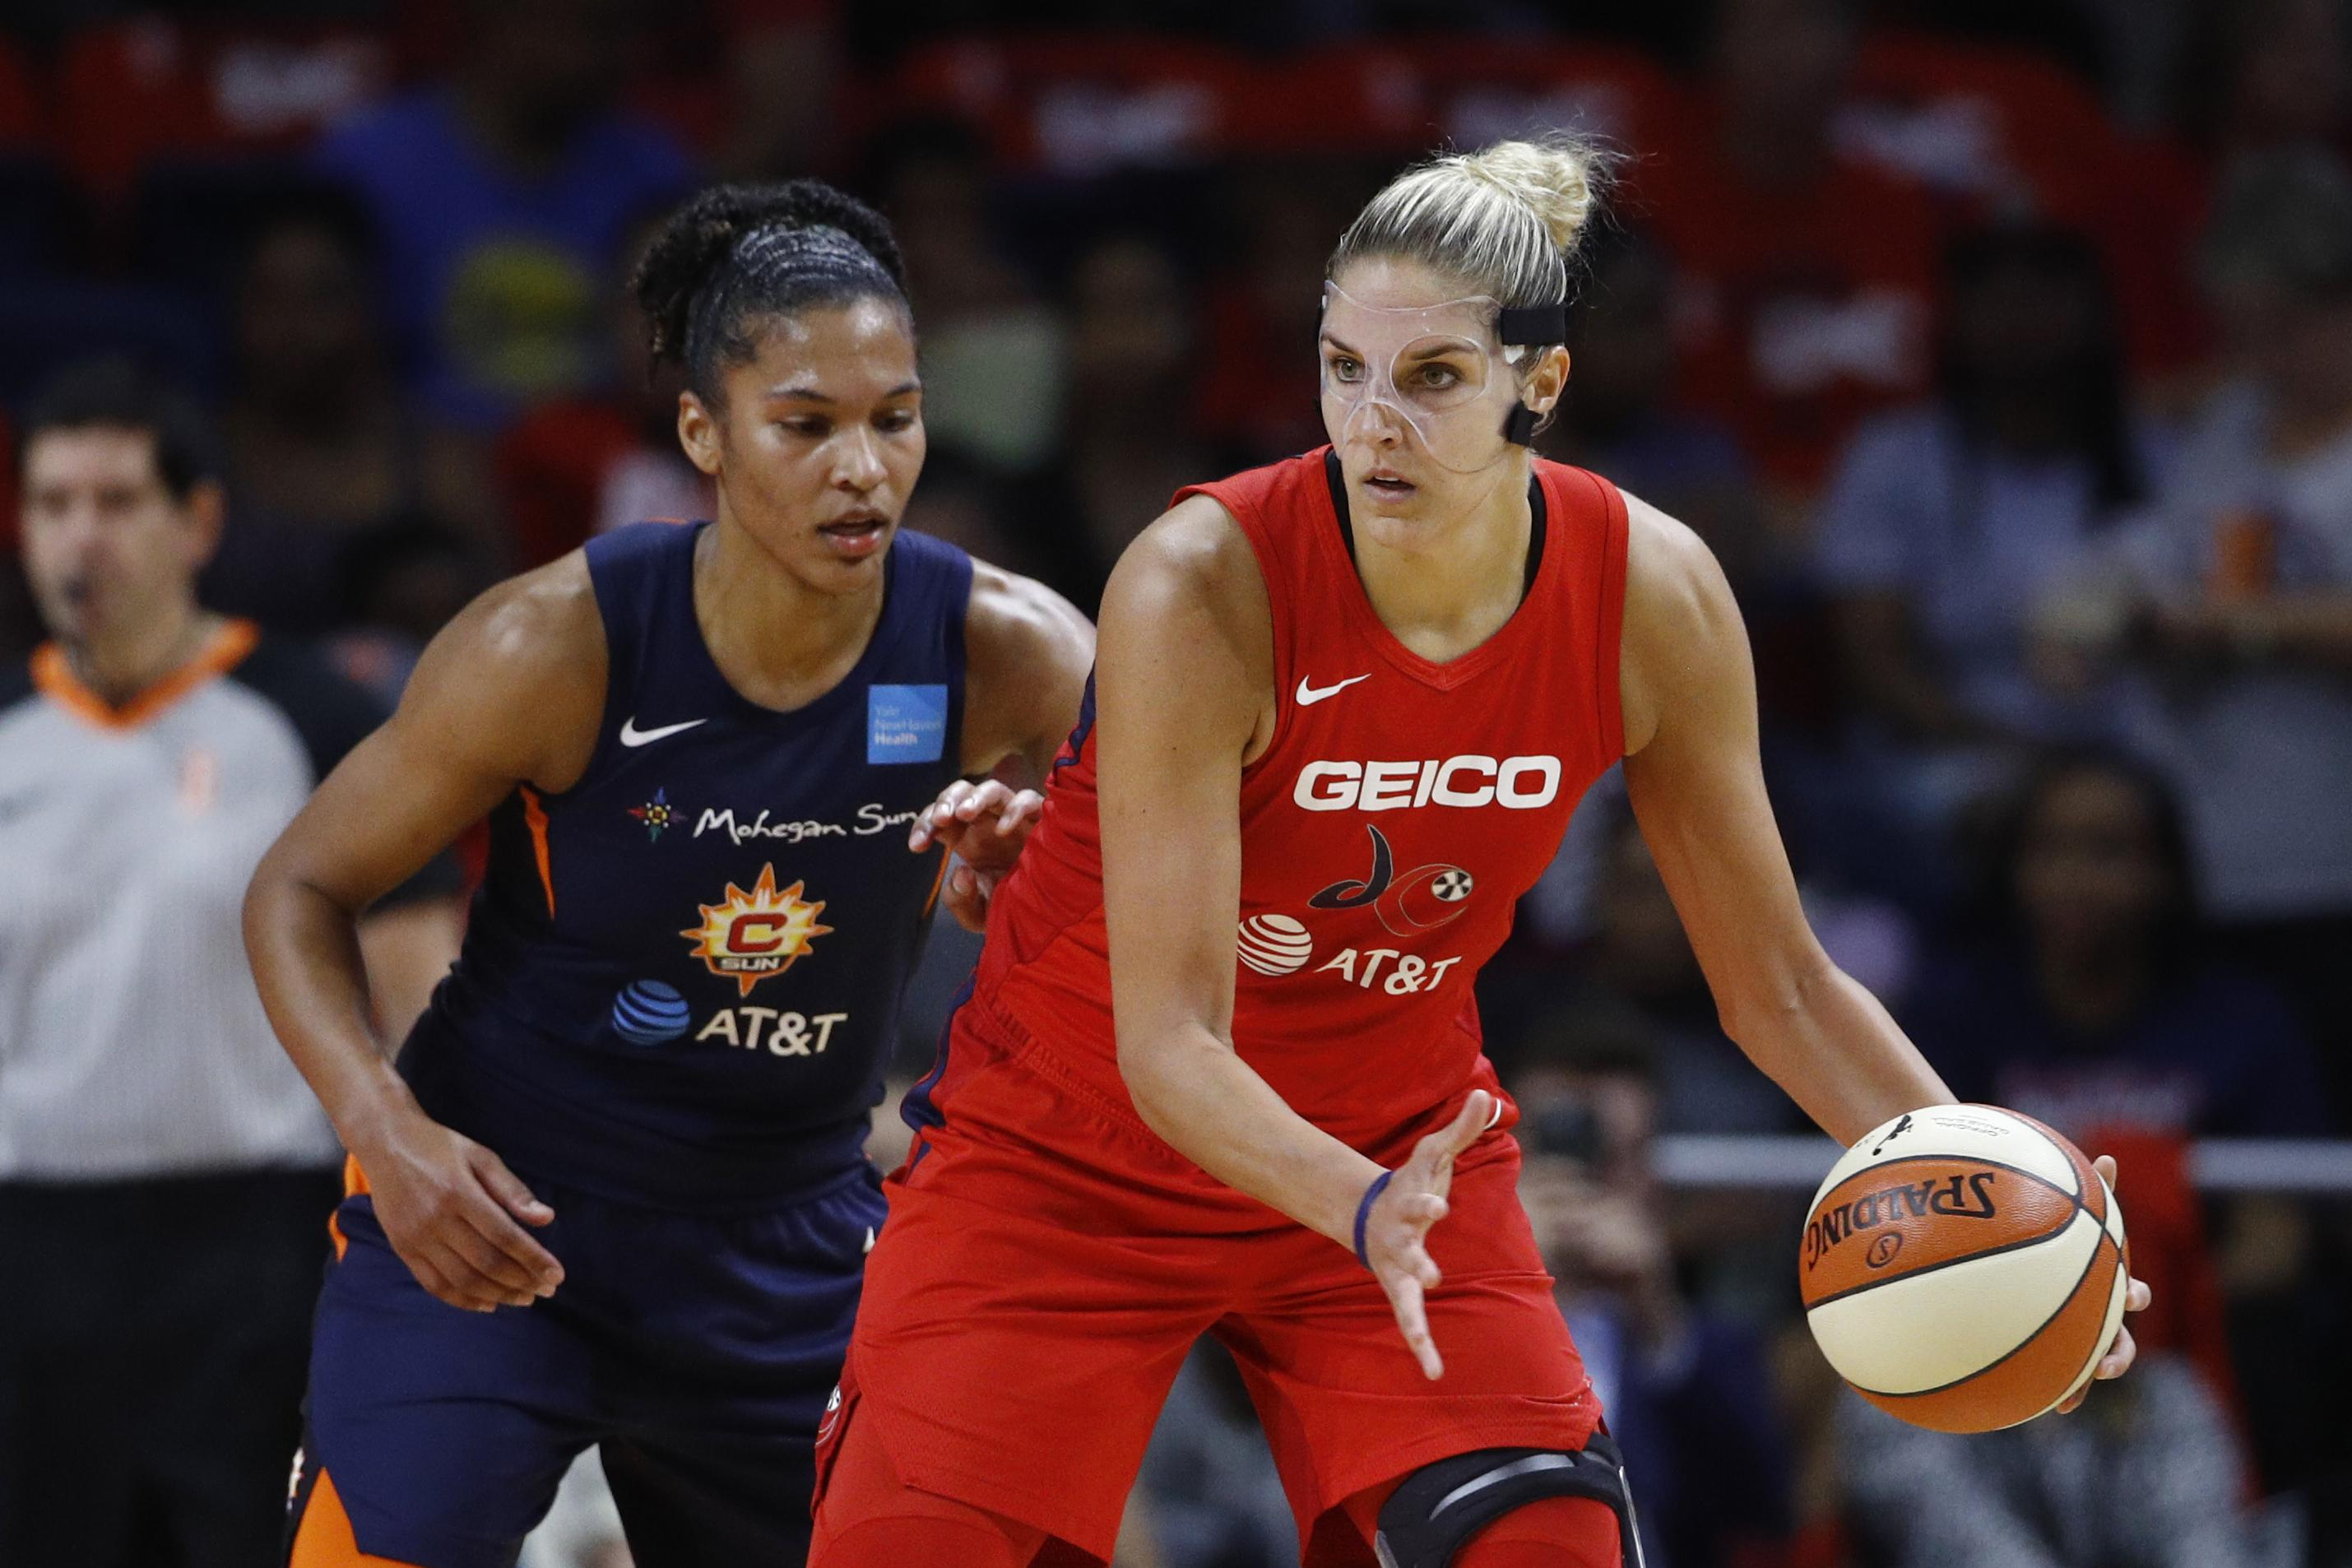 Mystics' Delle Donne has herniated disk in back